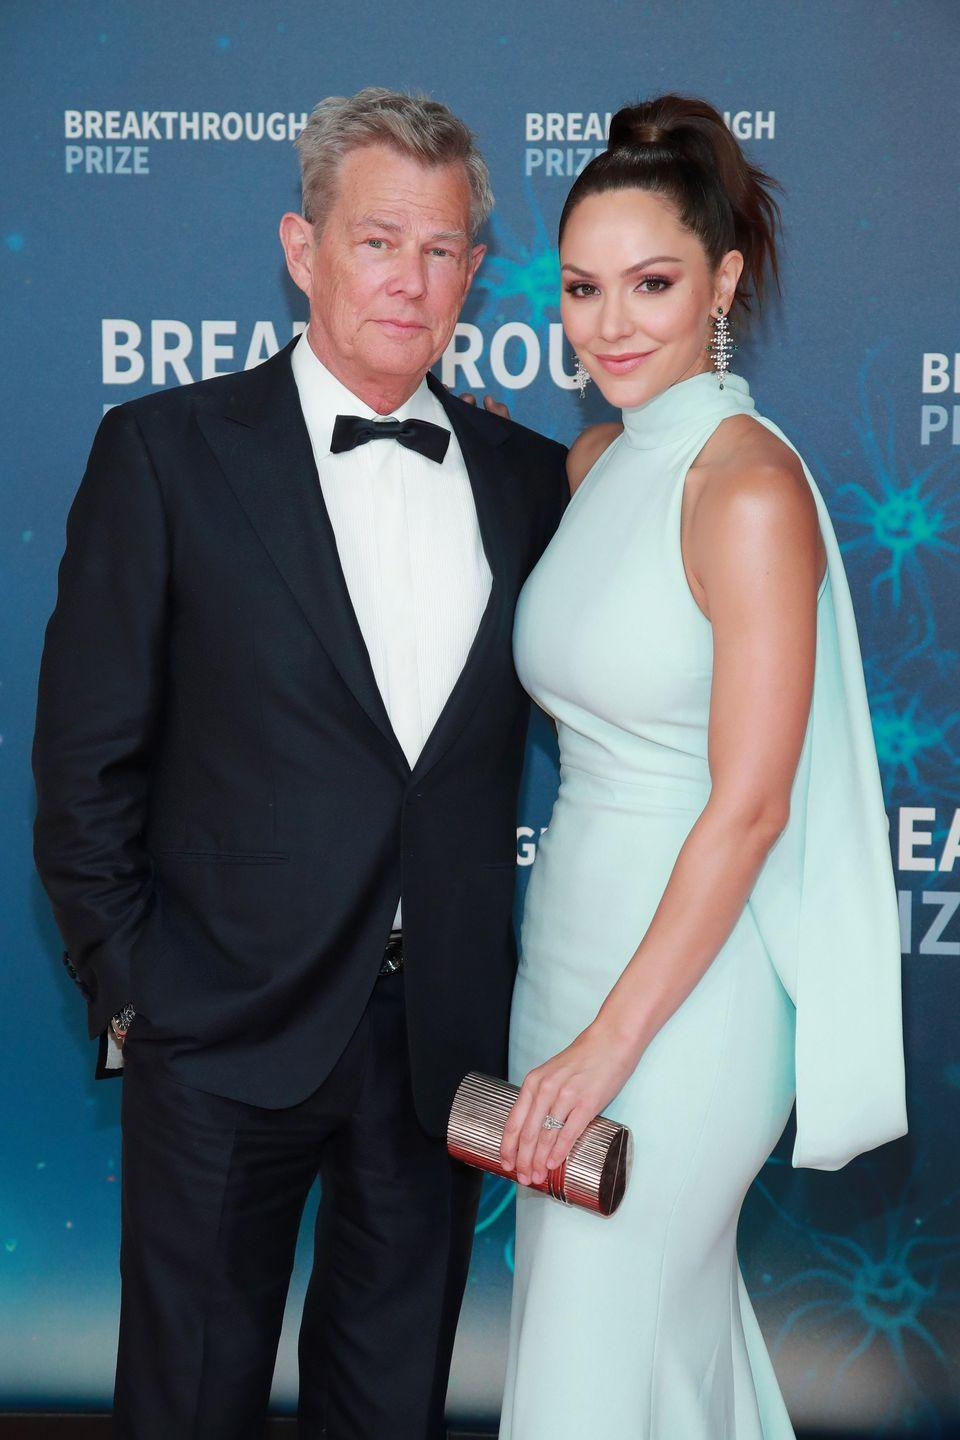 "<p>David Foster was fresh off of his divorce from Yolanda Hadid when he and Katharine McPhee revealed their relationship. Katharine's fans were relatively calm about it—until she announced their engagement on July 3, 2018. The singer <a href=""https://twitter.com/katharinemcphee/status/1015365879712763905"" rel=""nofollow noopener"" target=""_blank"" data-ylk=""slk:clapped back on Twitter"" class=""link rapid-noclick-resp"">clapped back on Twitter</a>, writing, ""Y'all should be worrying more about registering to vote and midterm elections than who's marrying me. Thank you for coming to my TED talk.""</p>"